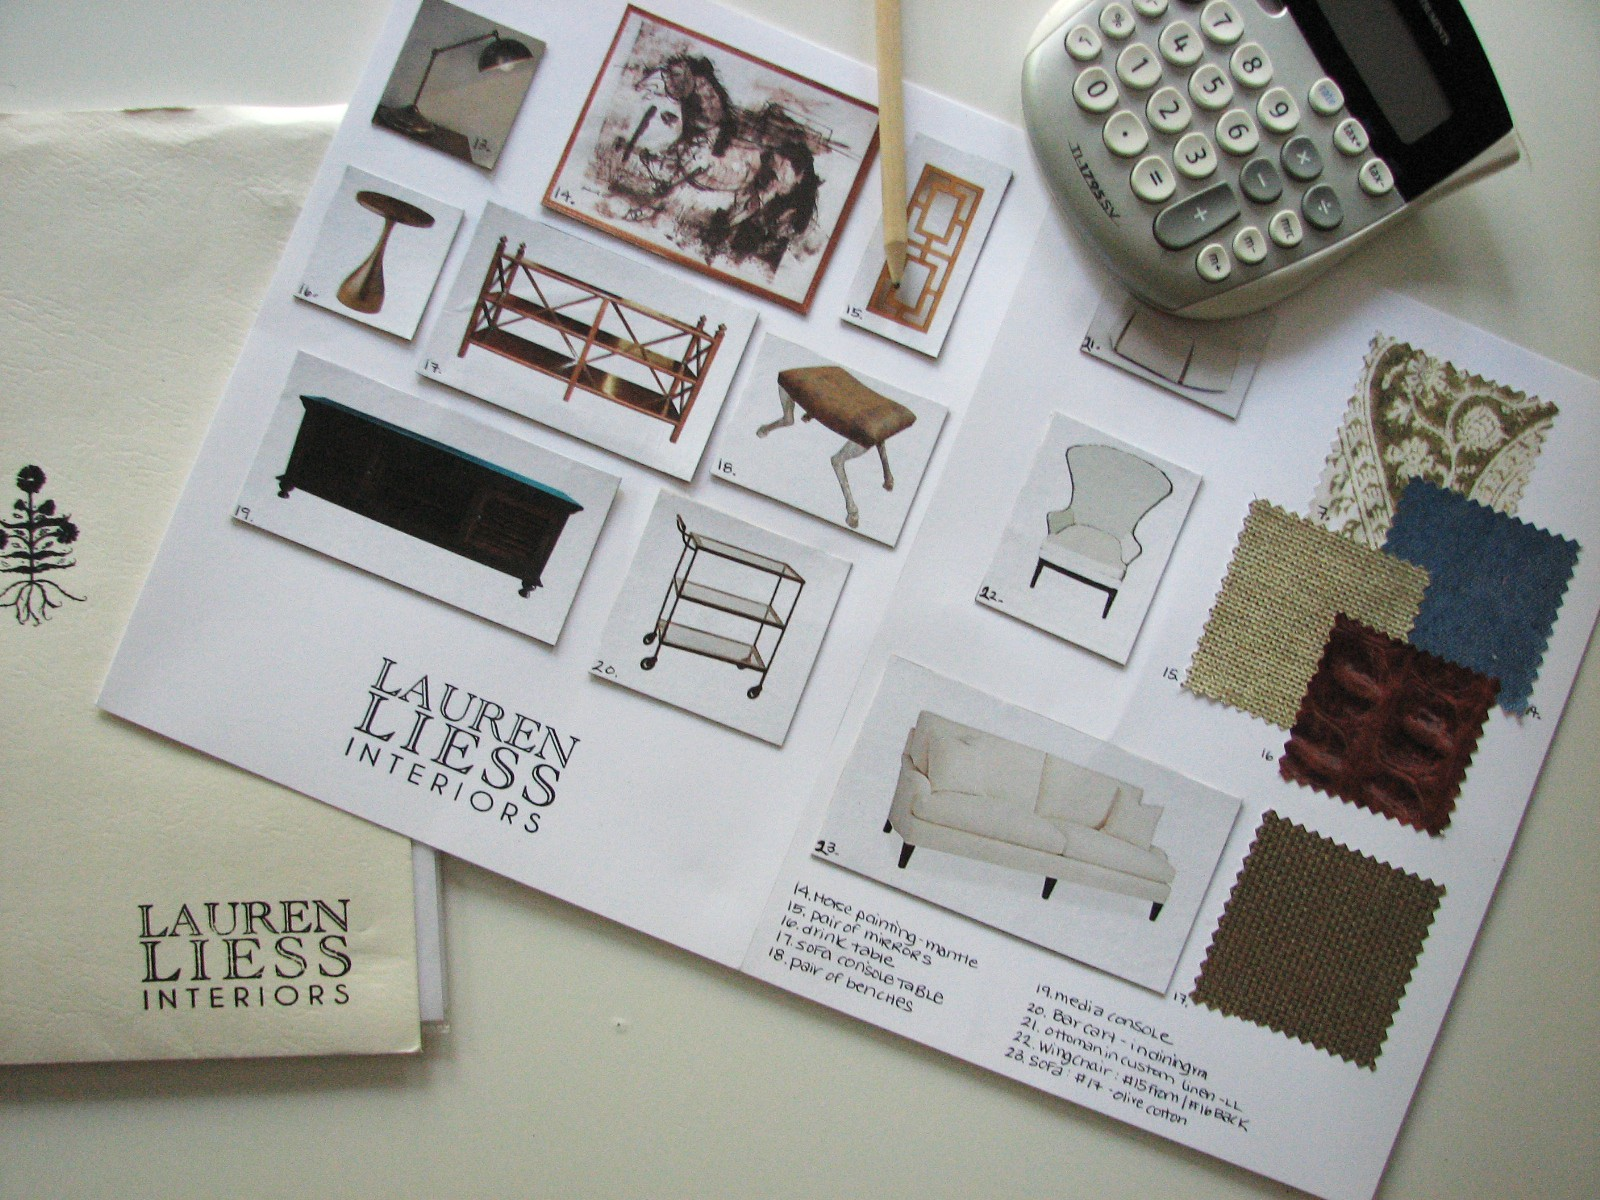 Lauren liess pure style home for Give me some ideas on interior designs